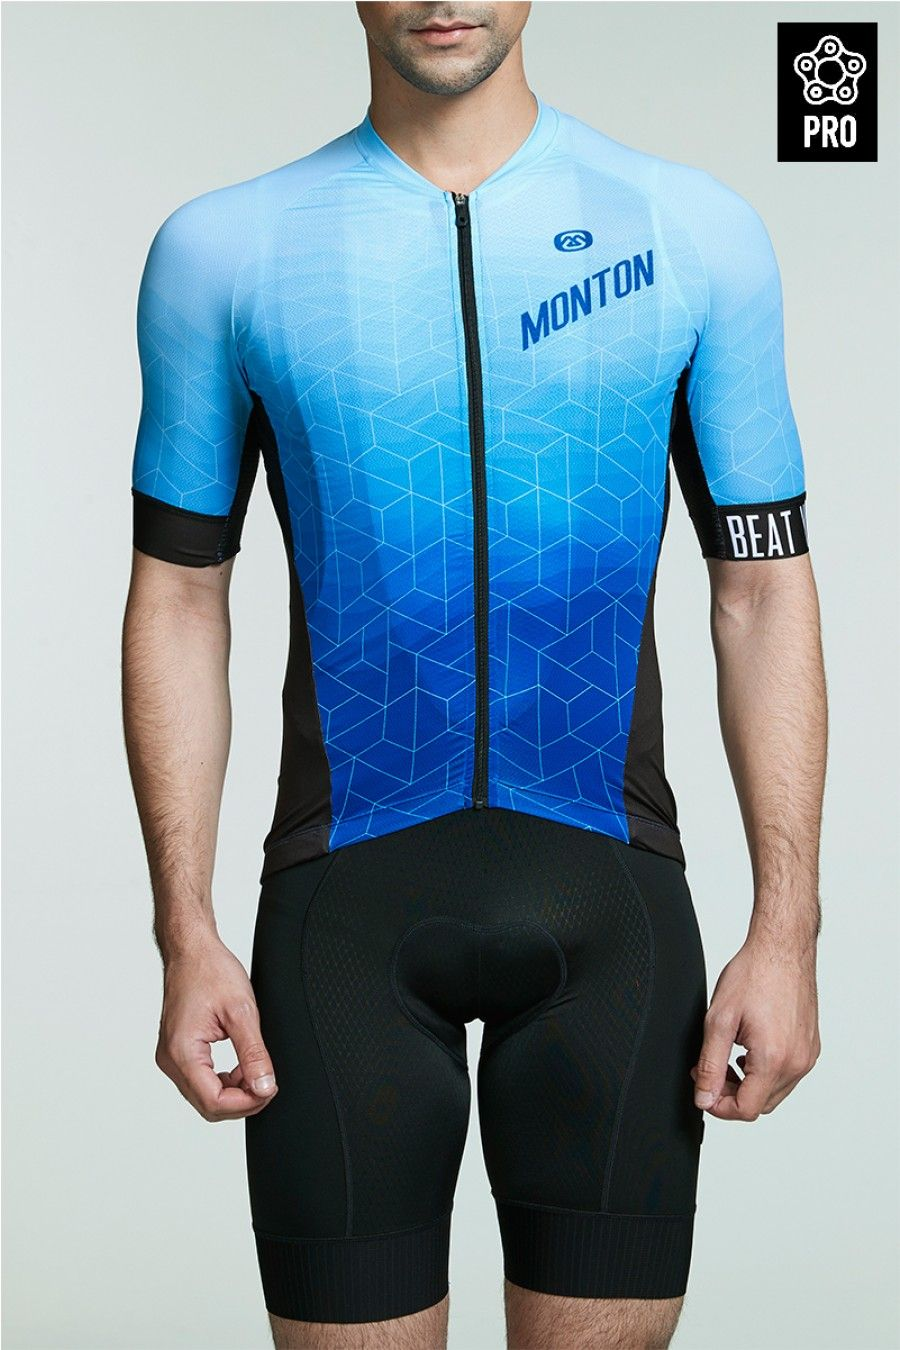 Bicycle Jerseys For Men Cycling Jersey Design Cycling Outfit Bicycle Jersey